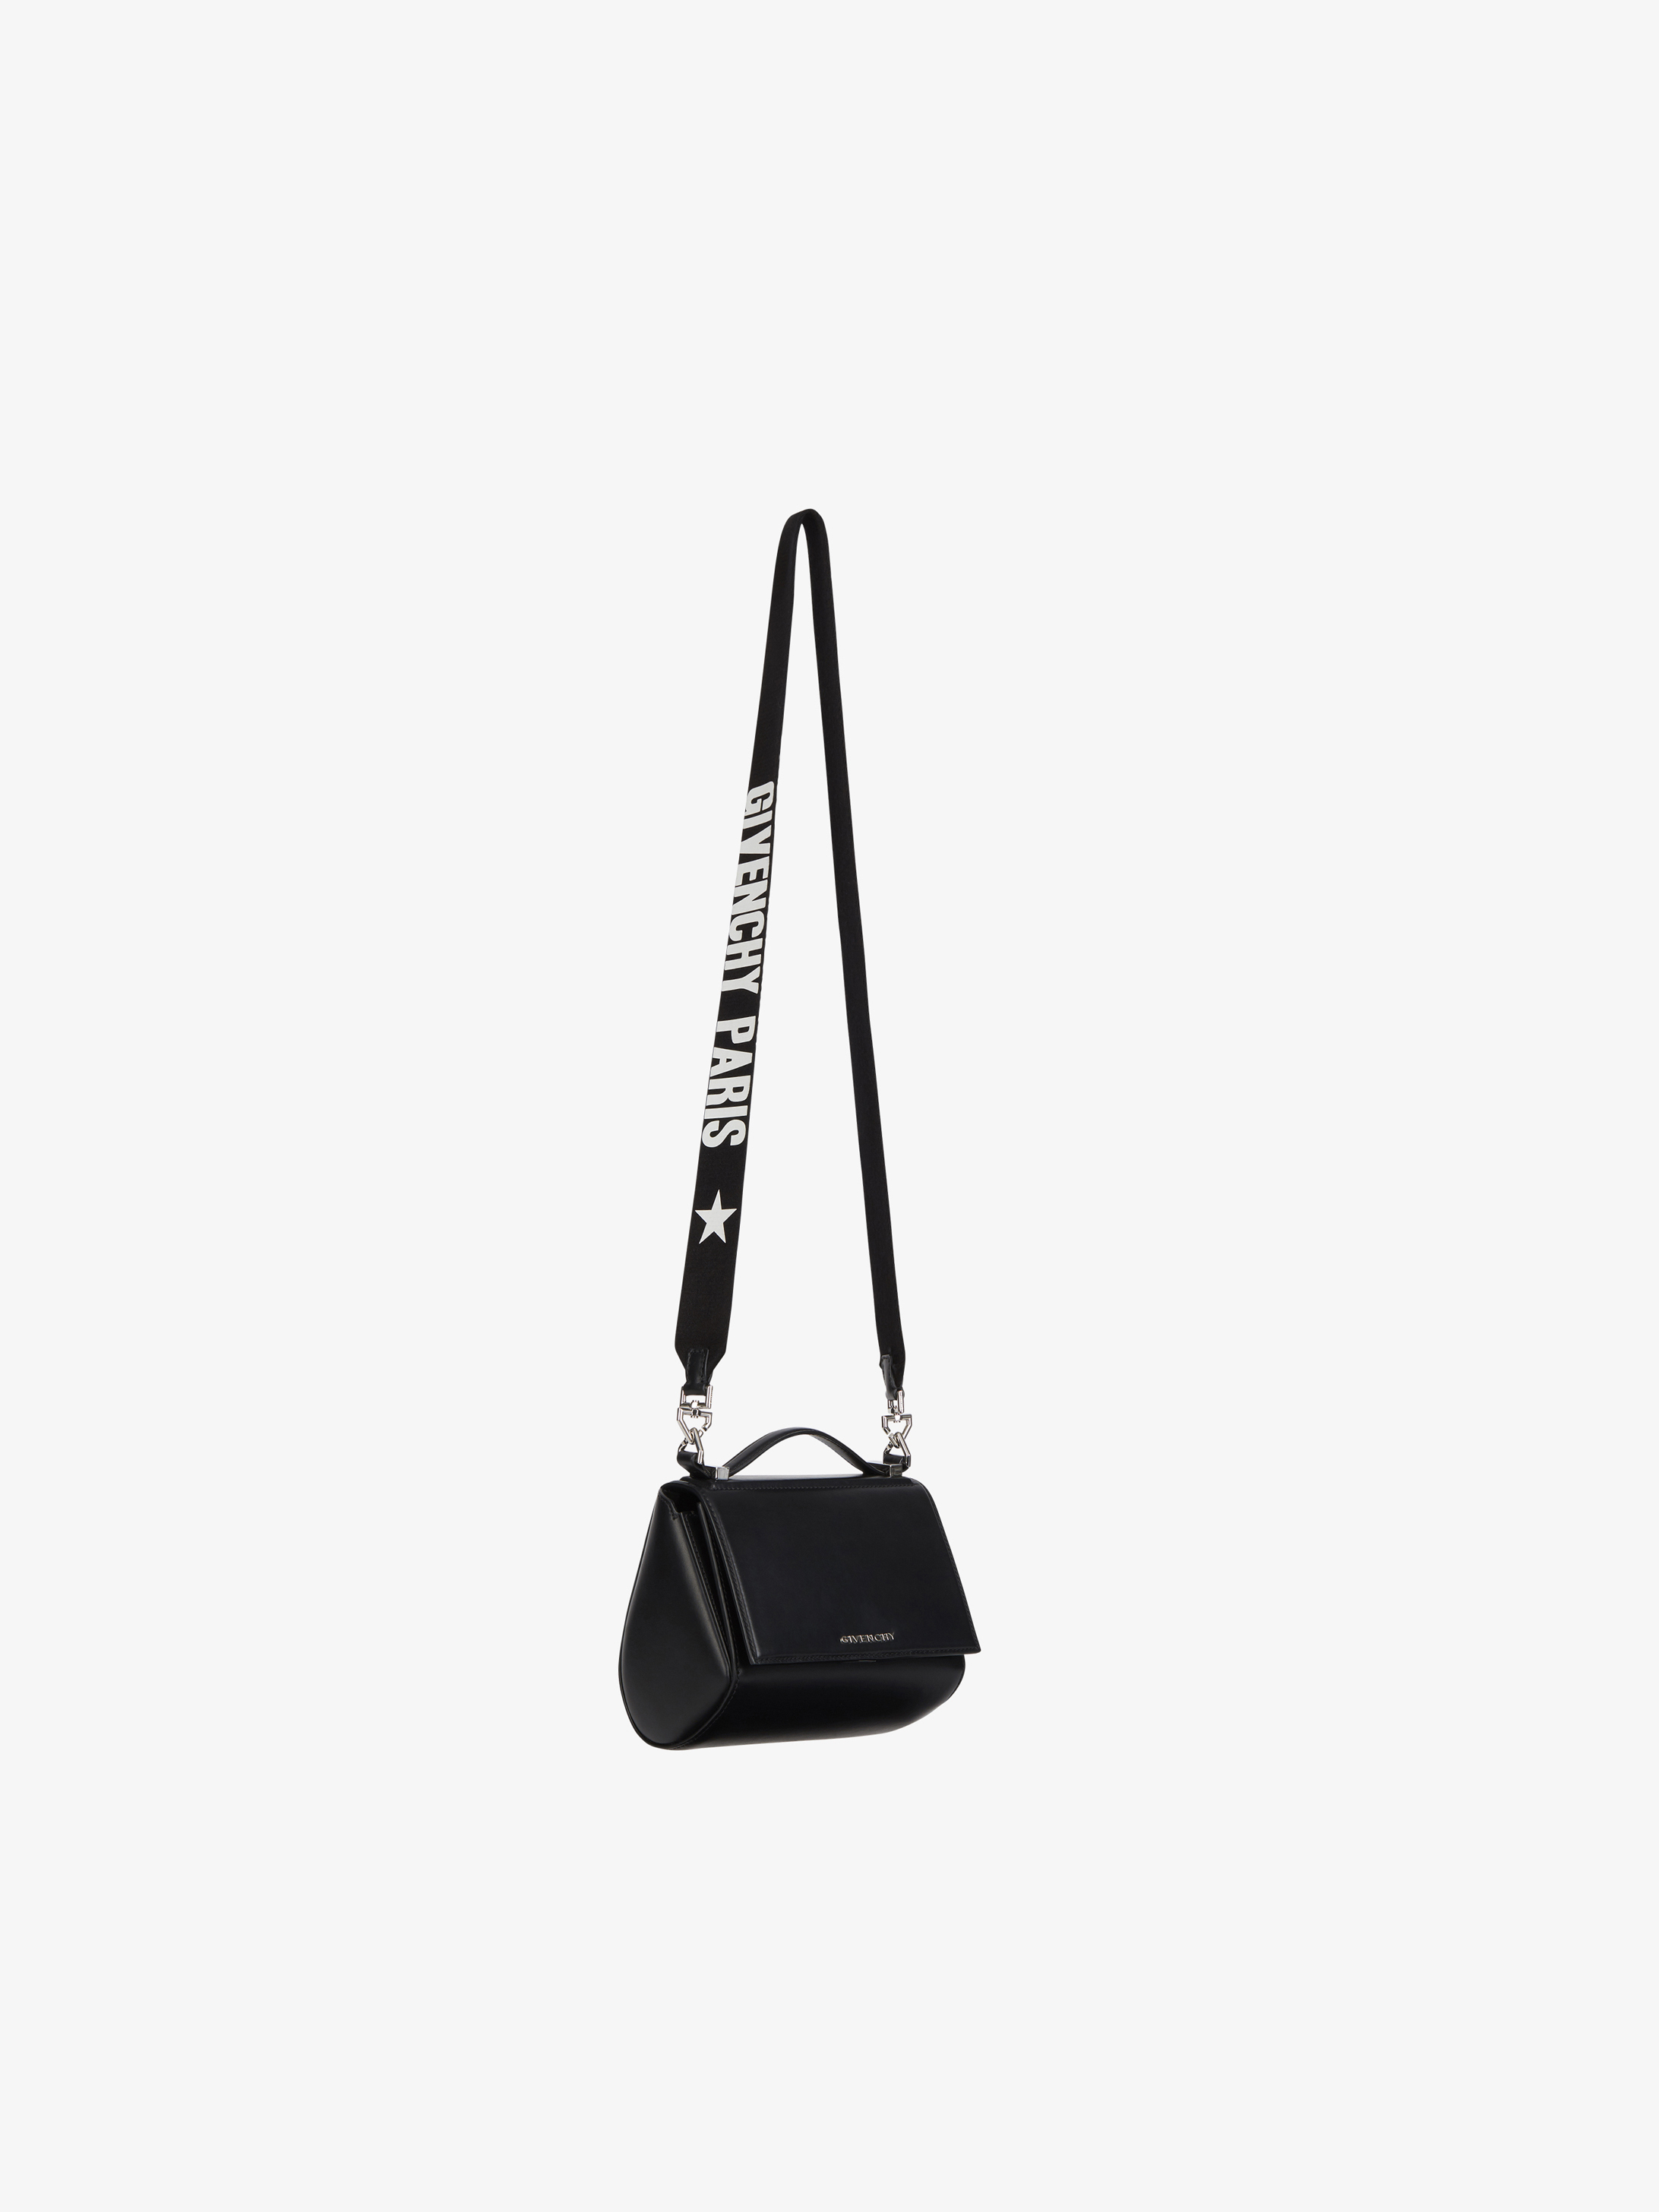 Mini Pandora Box bag with GIVENCHY PARIS strap